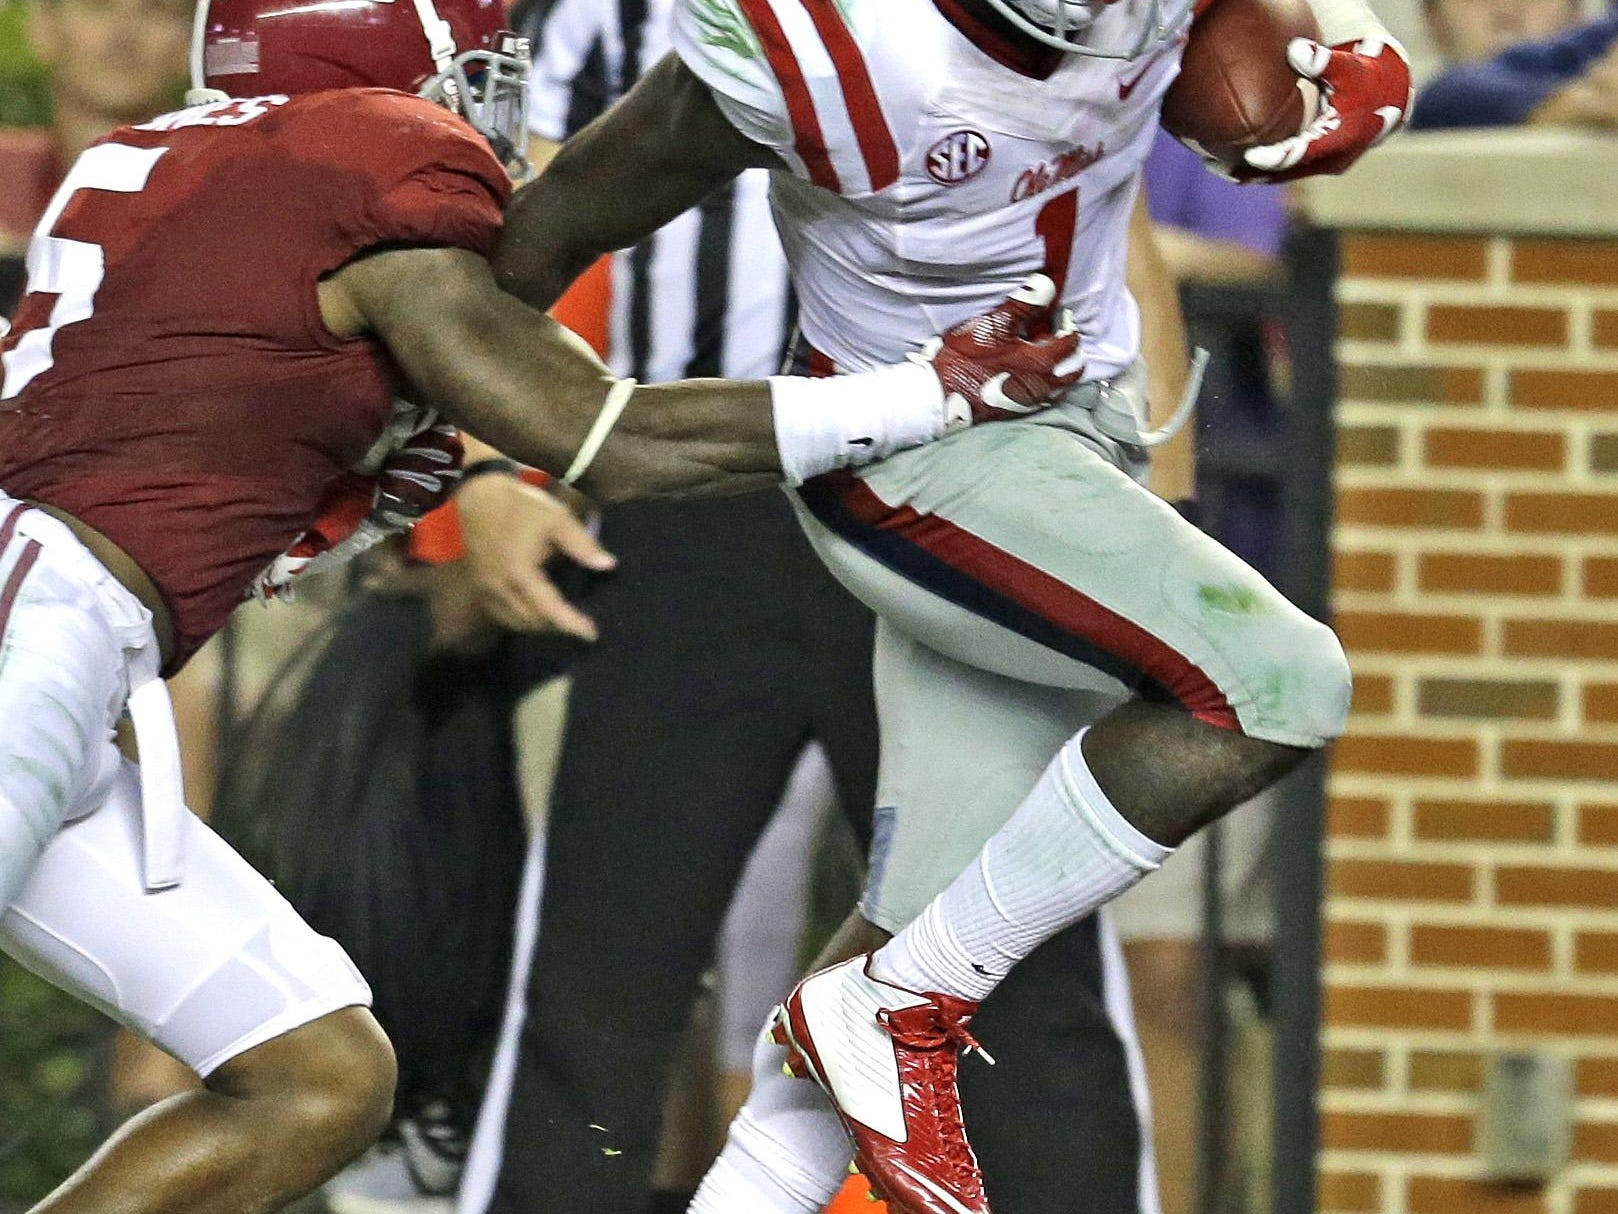 Mississippi wide receiver Laquon Treadwell, right, catches a pass for a touchdown over Alabama defensive back Cyrus Jones, left, during the second half Saturday in Tuscaloosa.